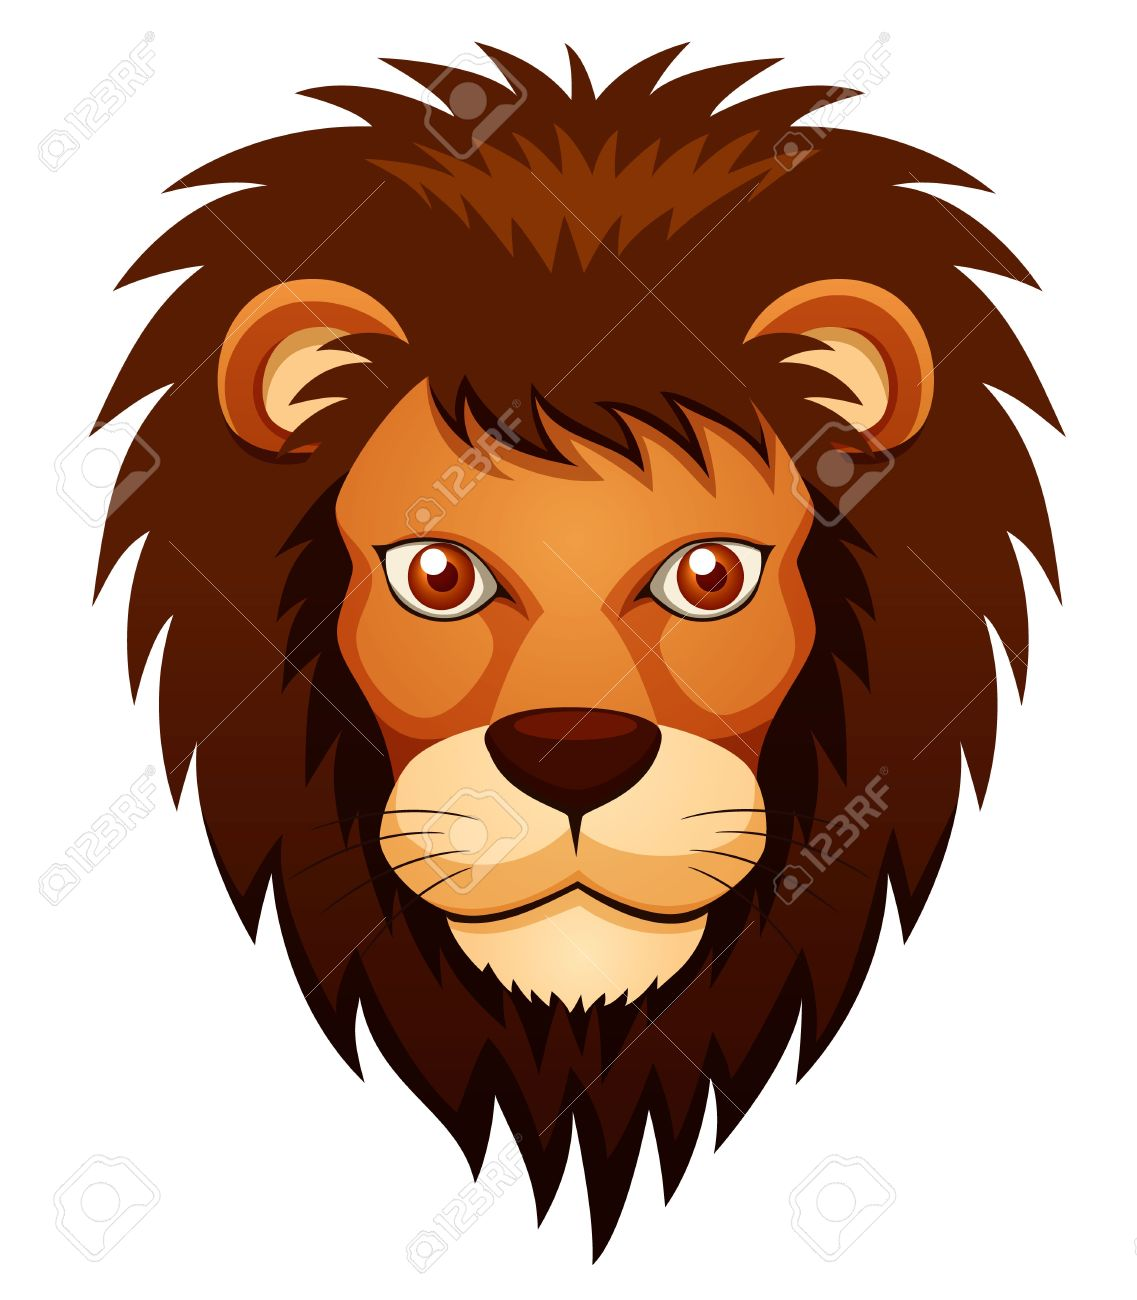 illustration of lion face royalty free cliparts vectors and stock rh 123rf com lion cartoon face clipart lion face cartoon images